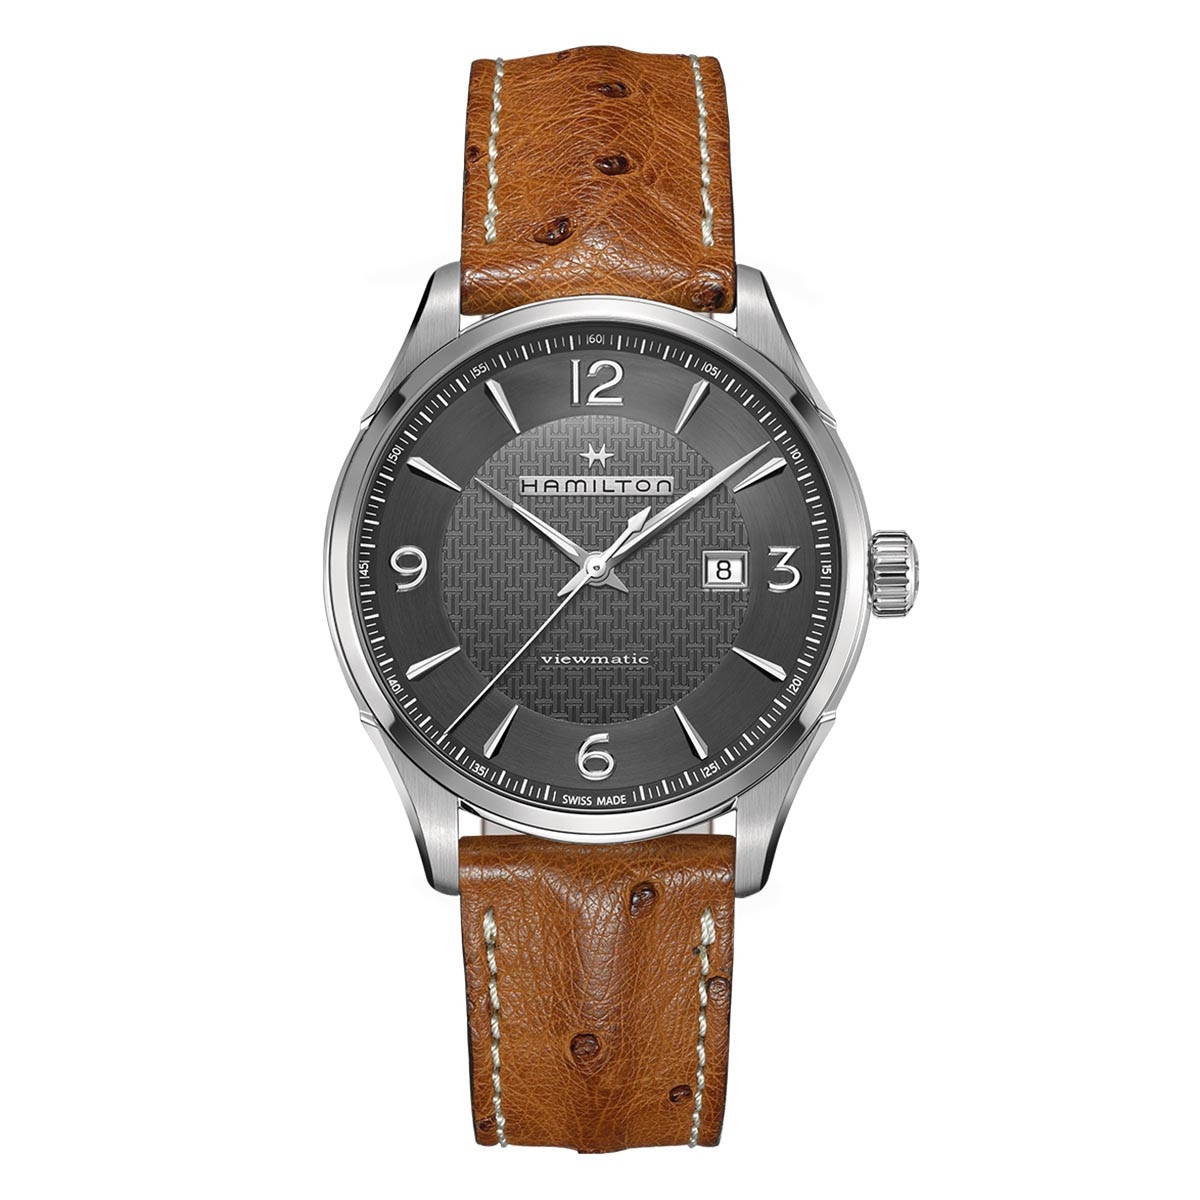 New Man's Hamilton Jazzmaster Viewmatic